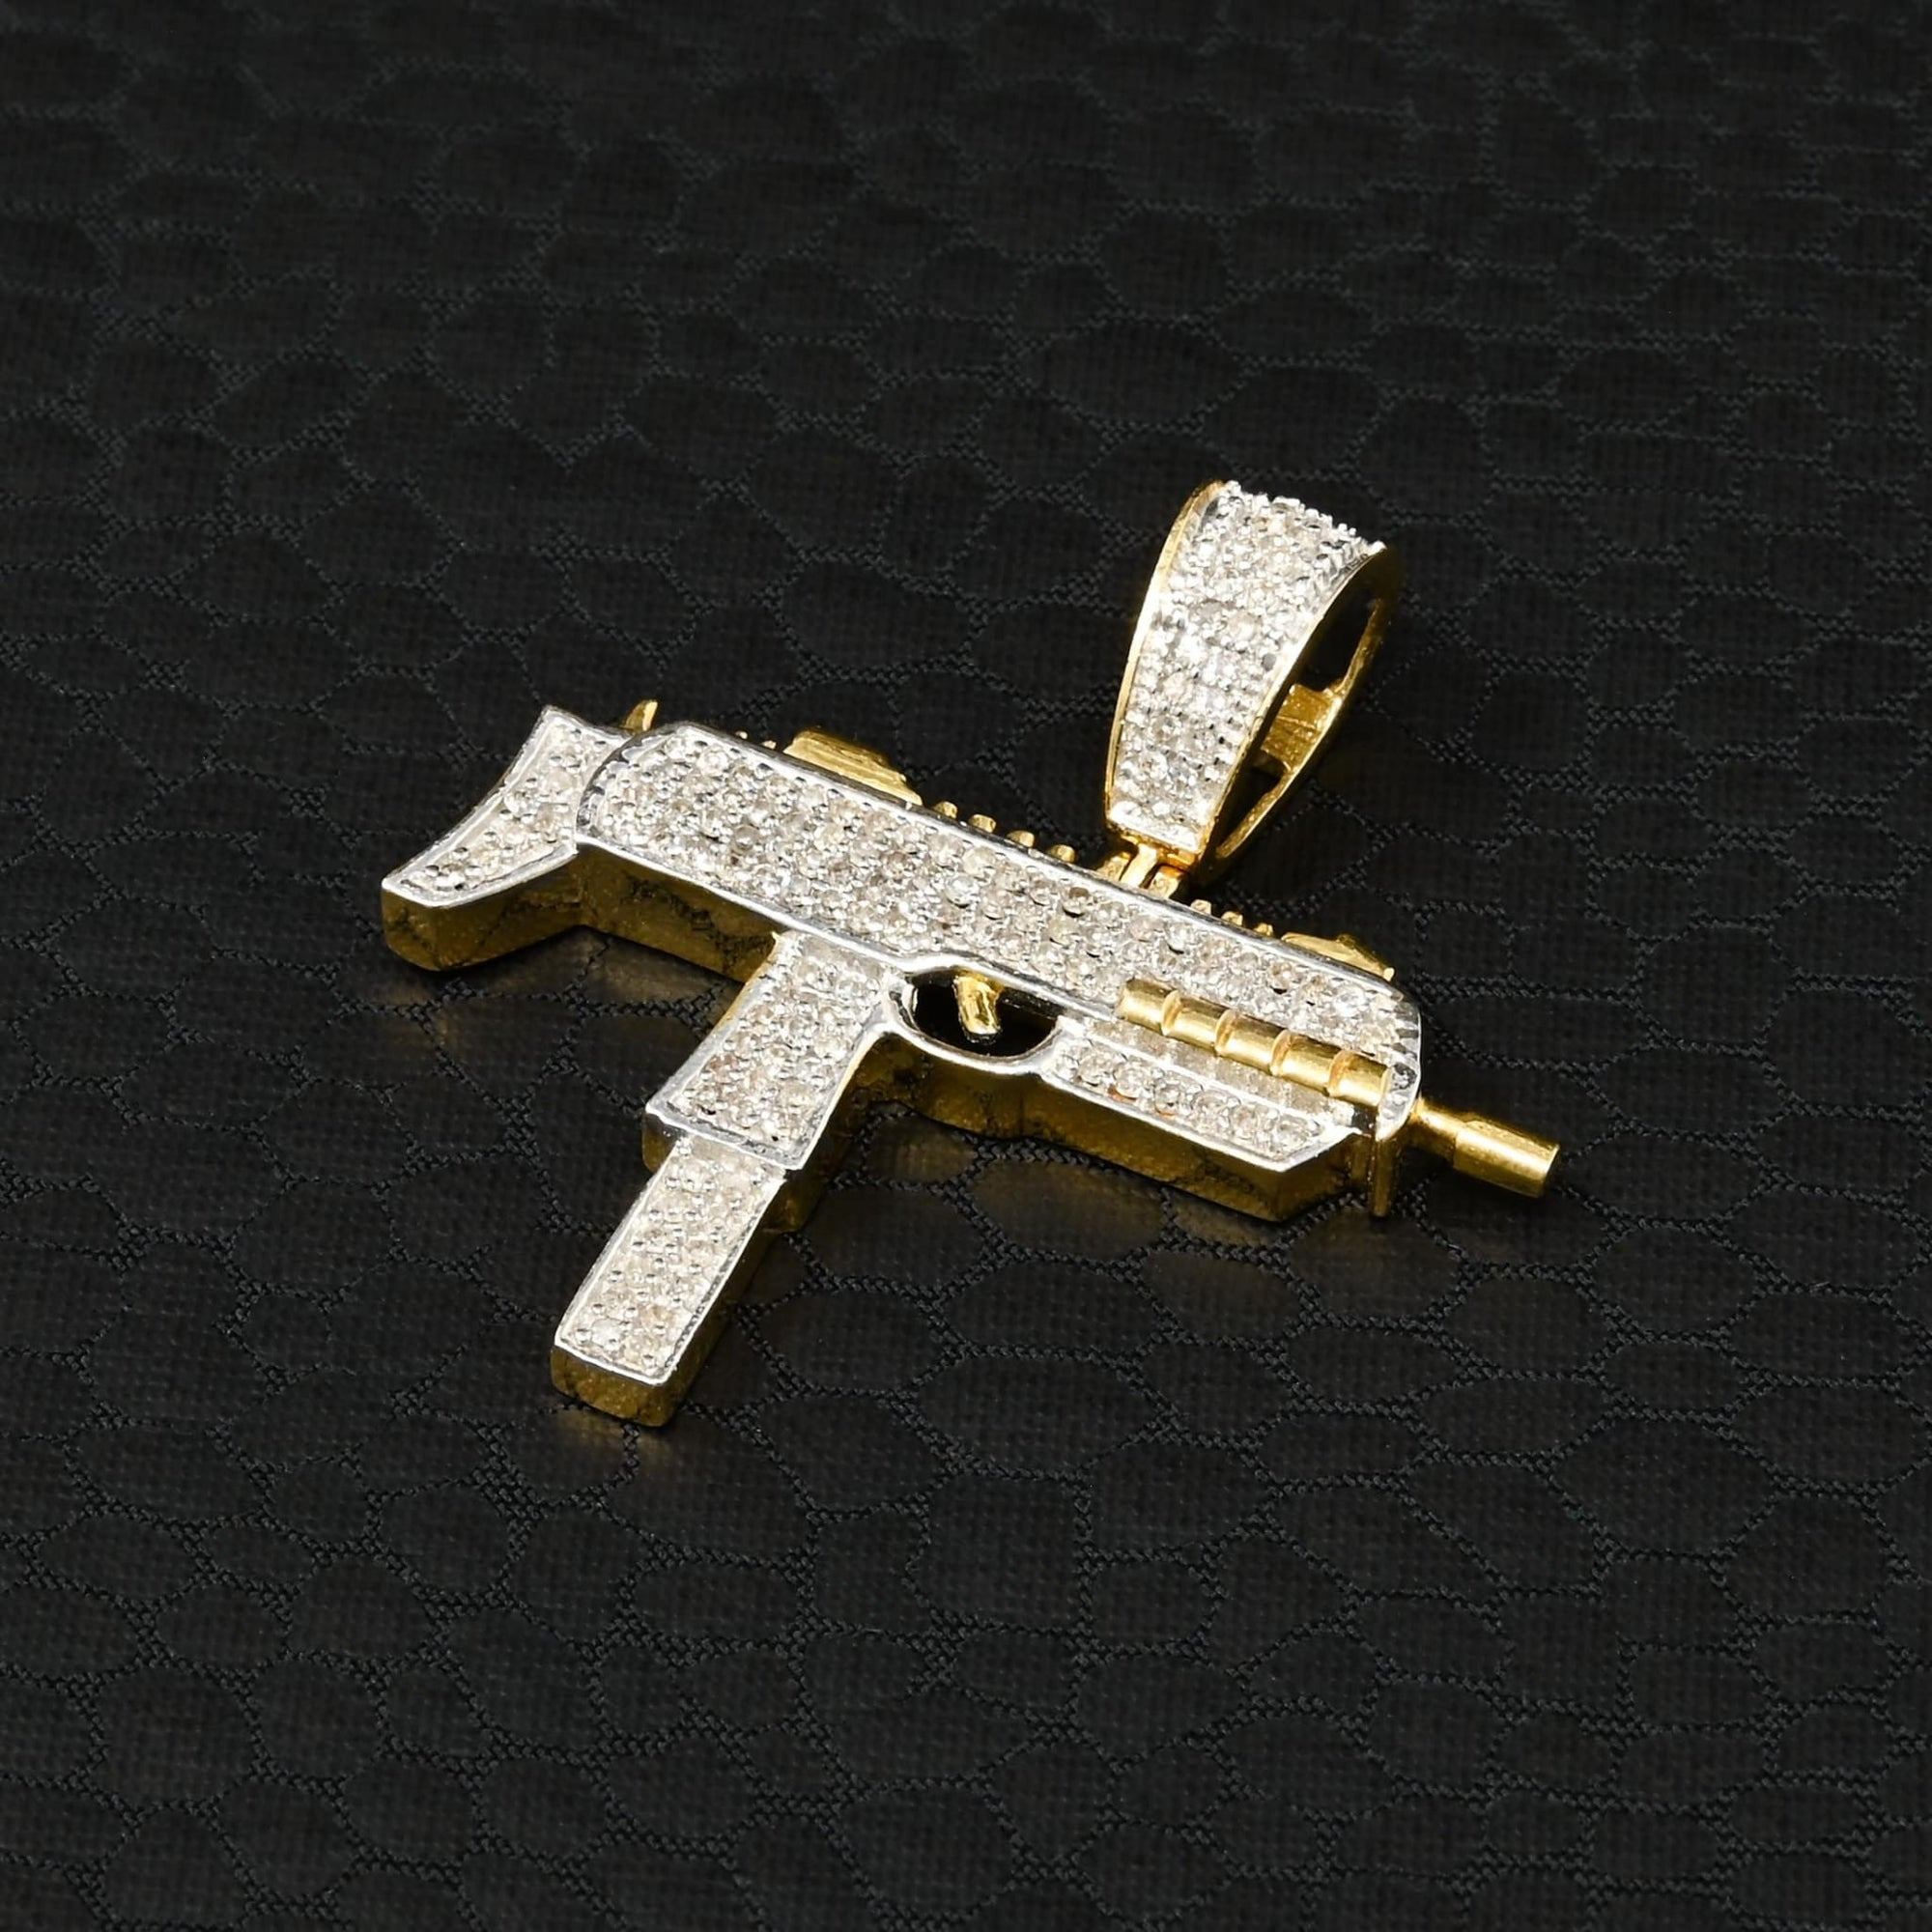 Pendentif à Diamants en Or 10K | Pendentif Divers Rifle D2 - Diamant Or 2 Tons